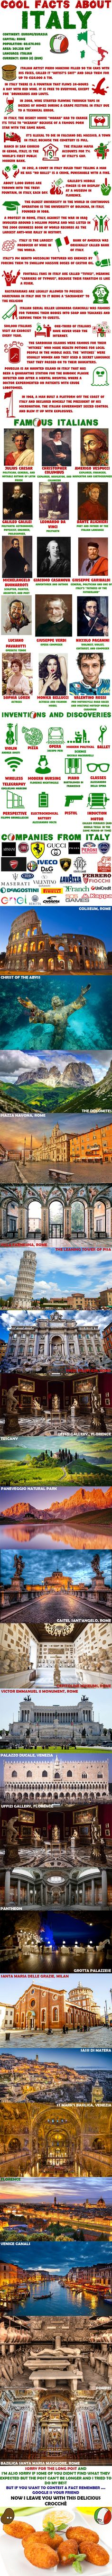 Cool Facts About Italy